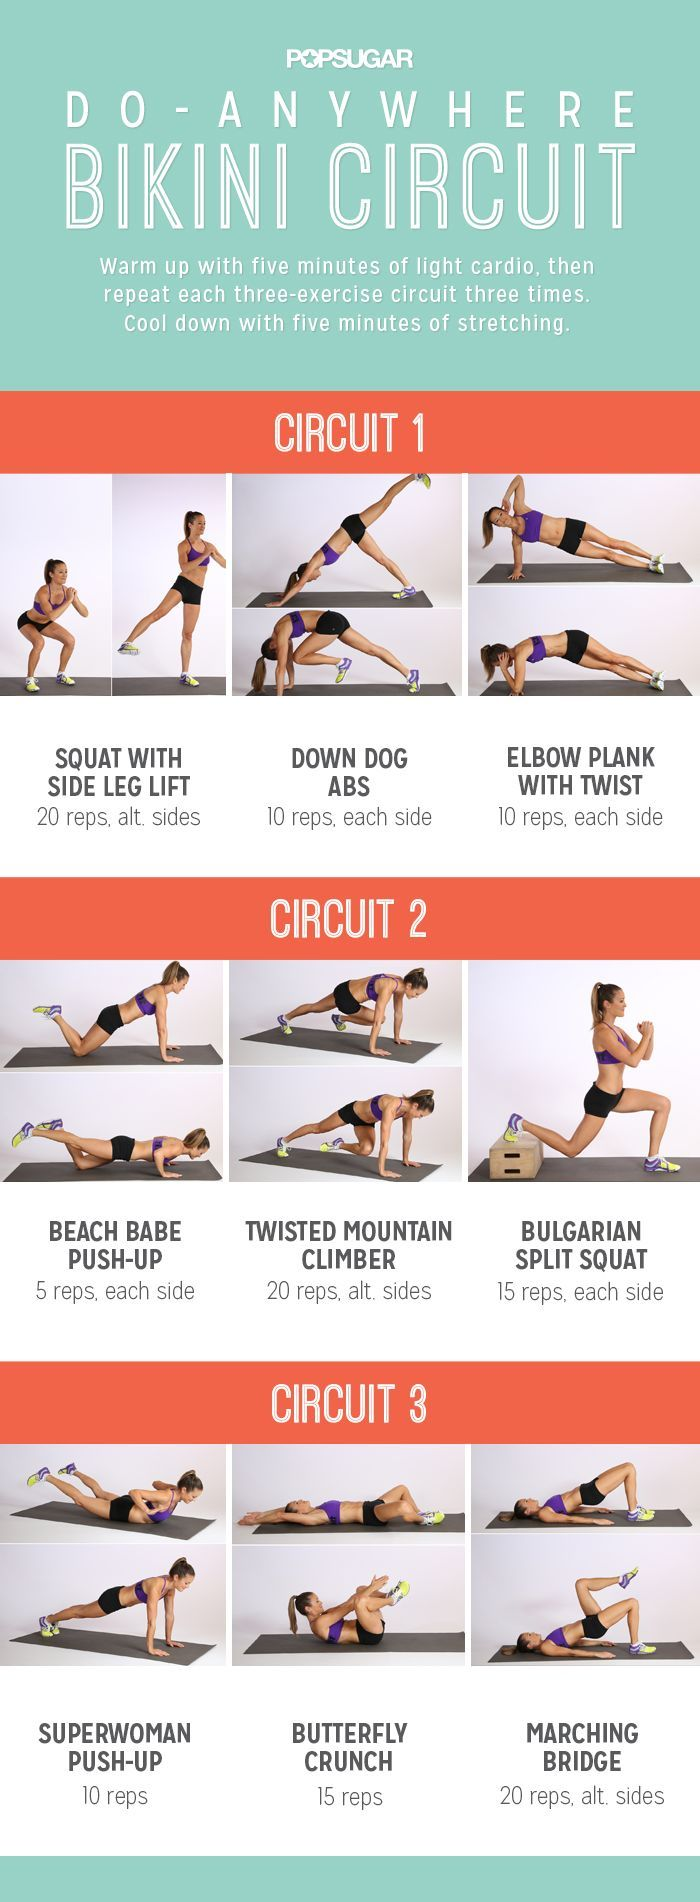 We love bodyweight workouts! No equipment needed means no excuses. This workout works your entire body with a little extra emphasis on the abs — get ready to pull out your bikini!